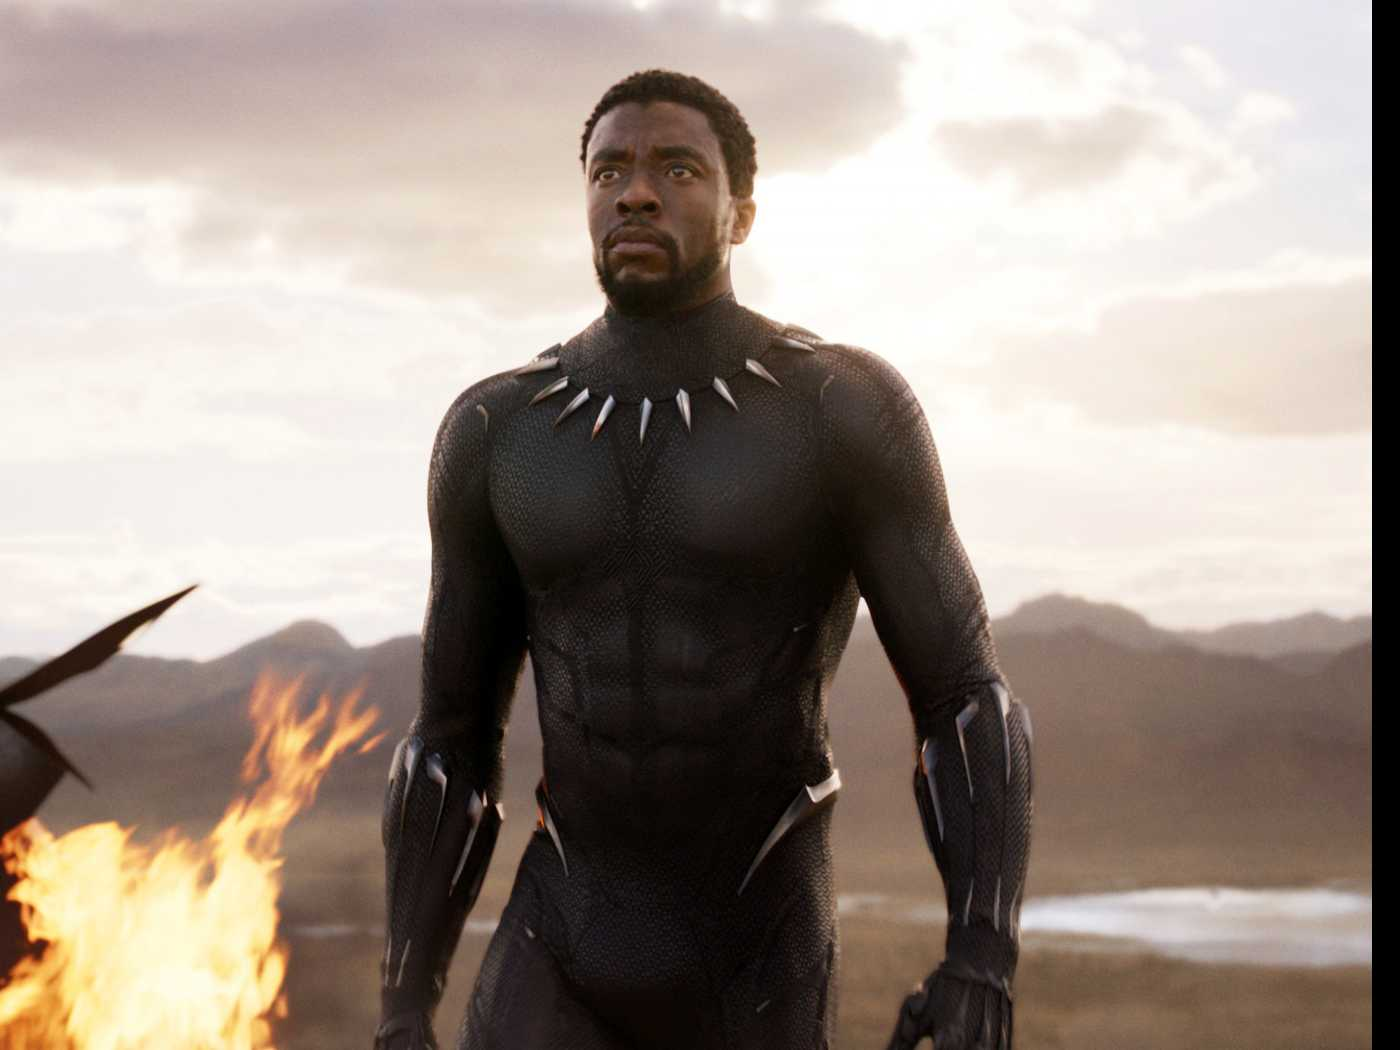 As 'Black Panther' Shows, Inclusion Pays at the Box Office